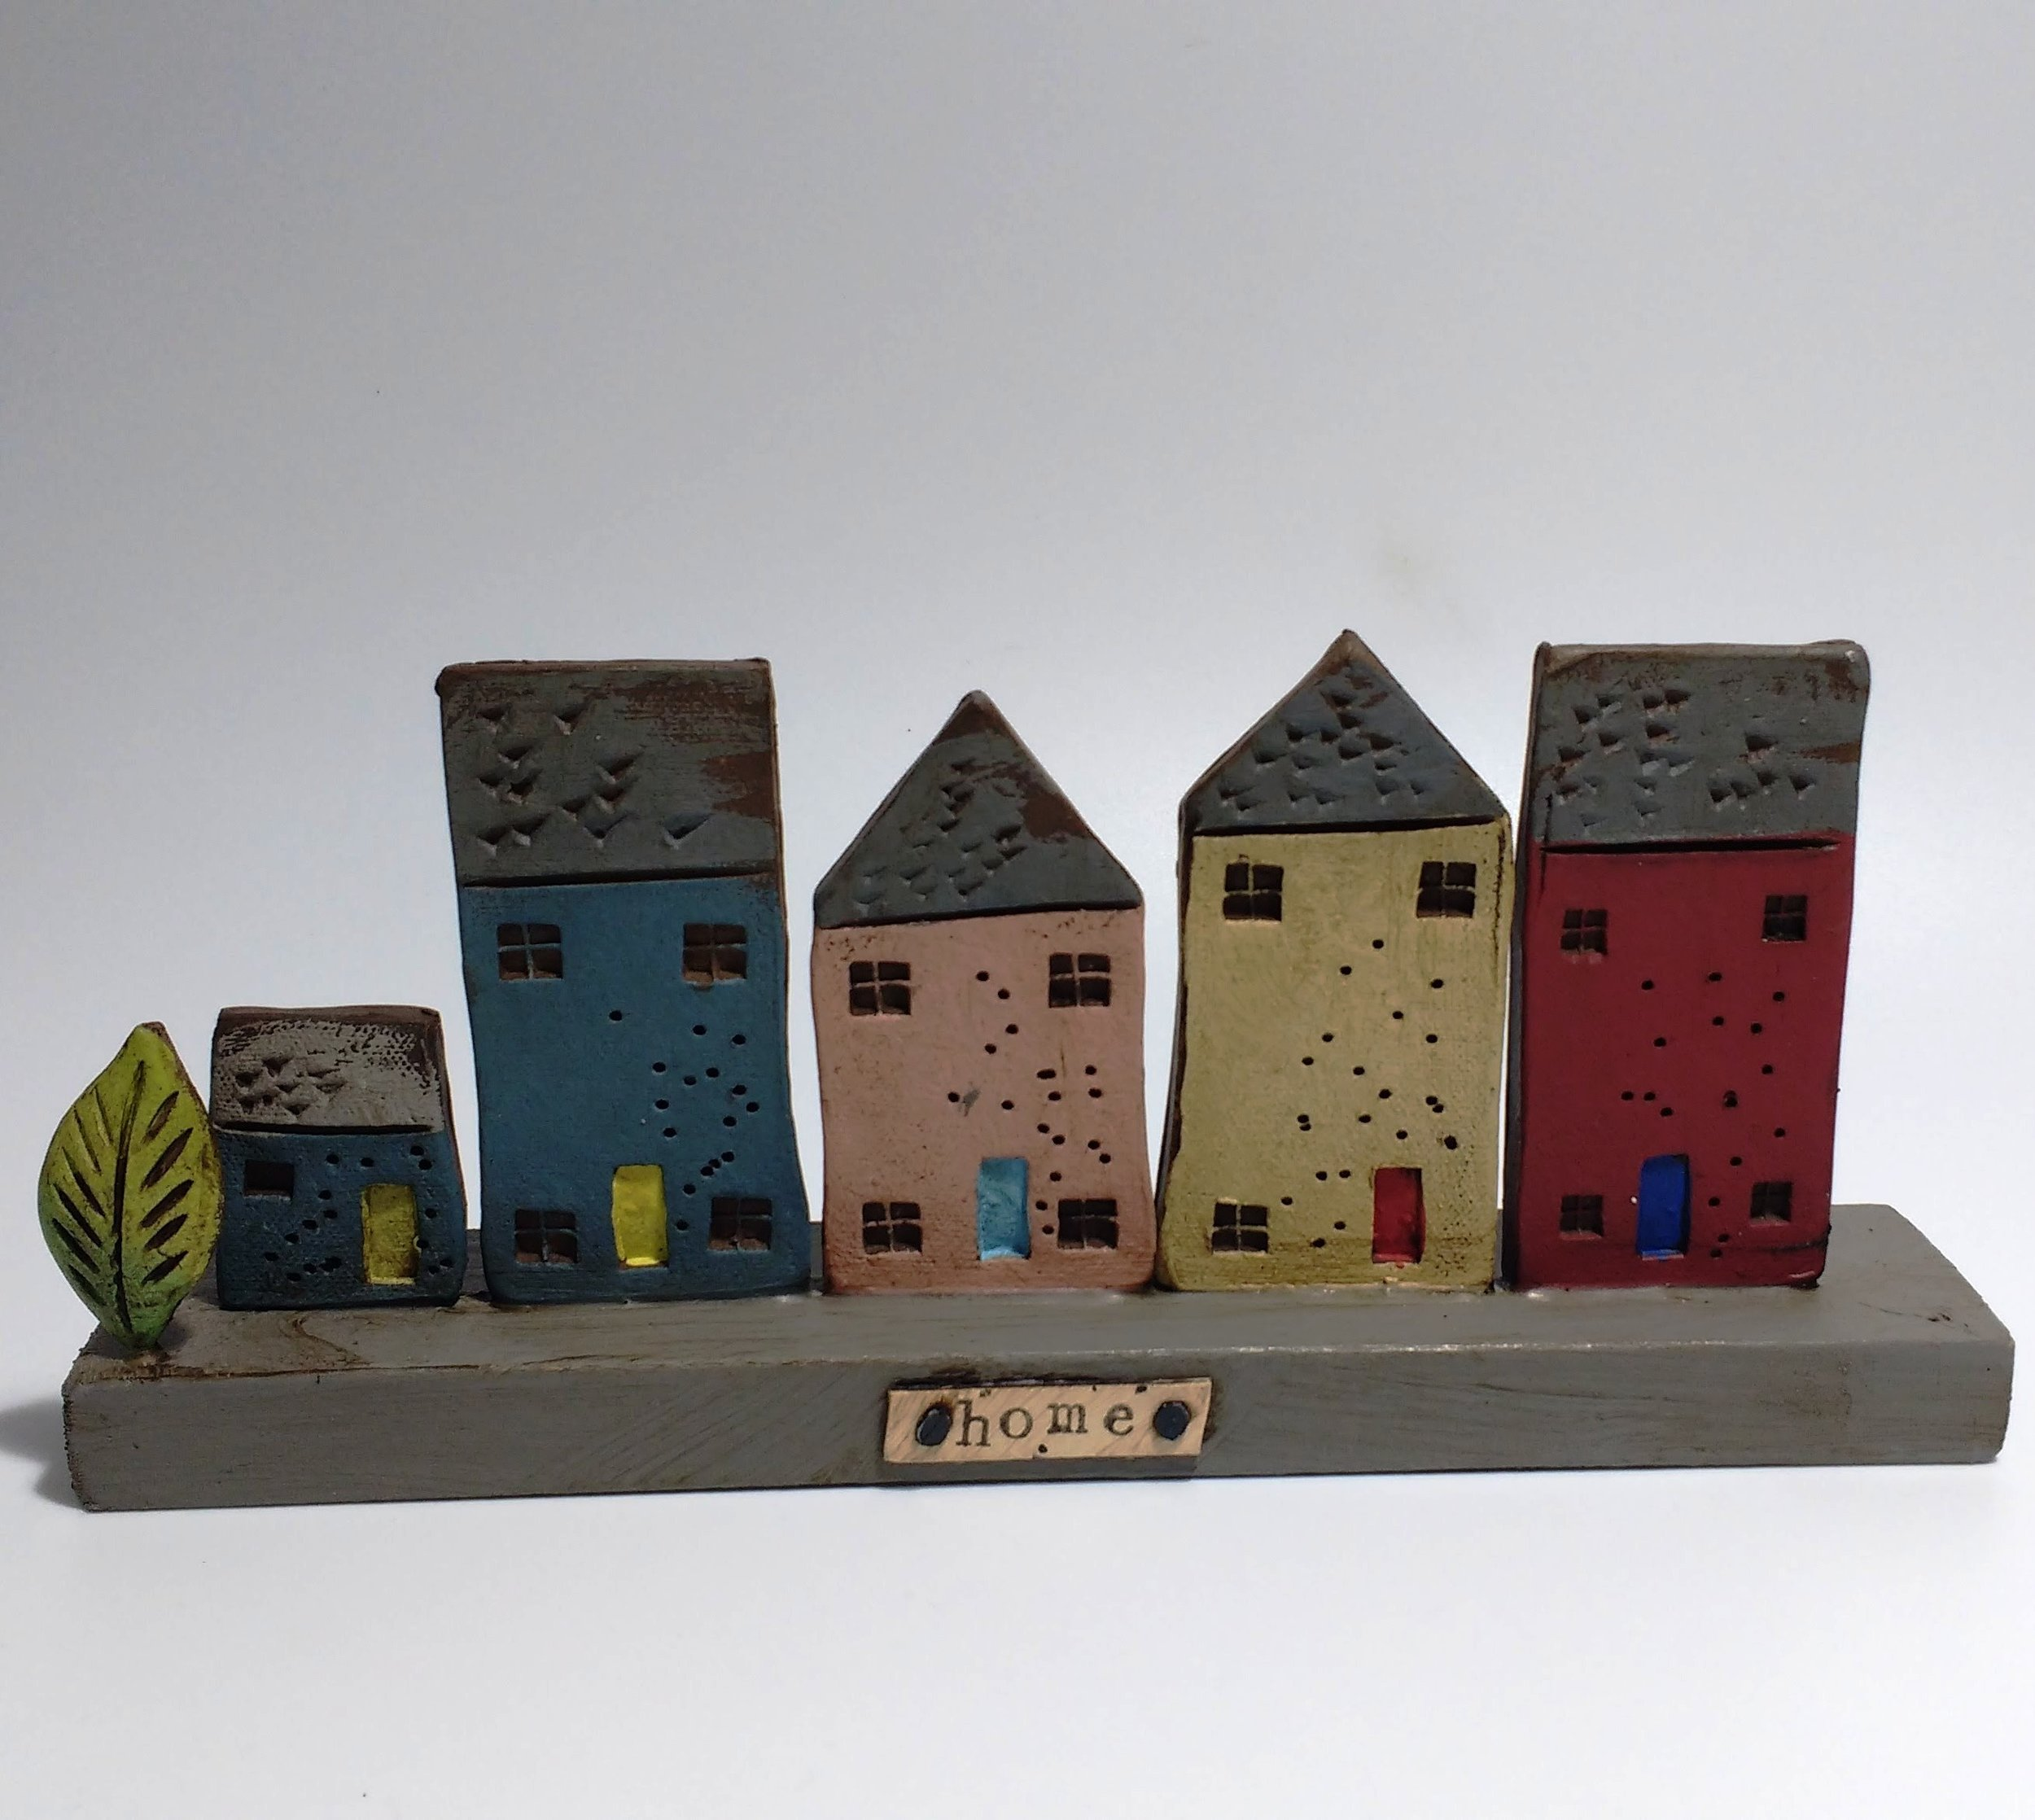 5 Houses  Ceramic on Wooden Plinth  £44